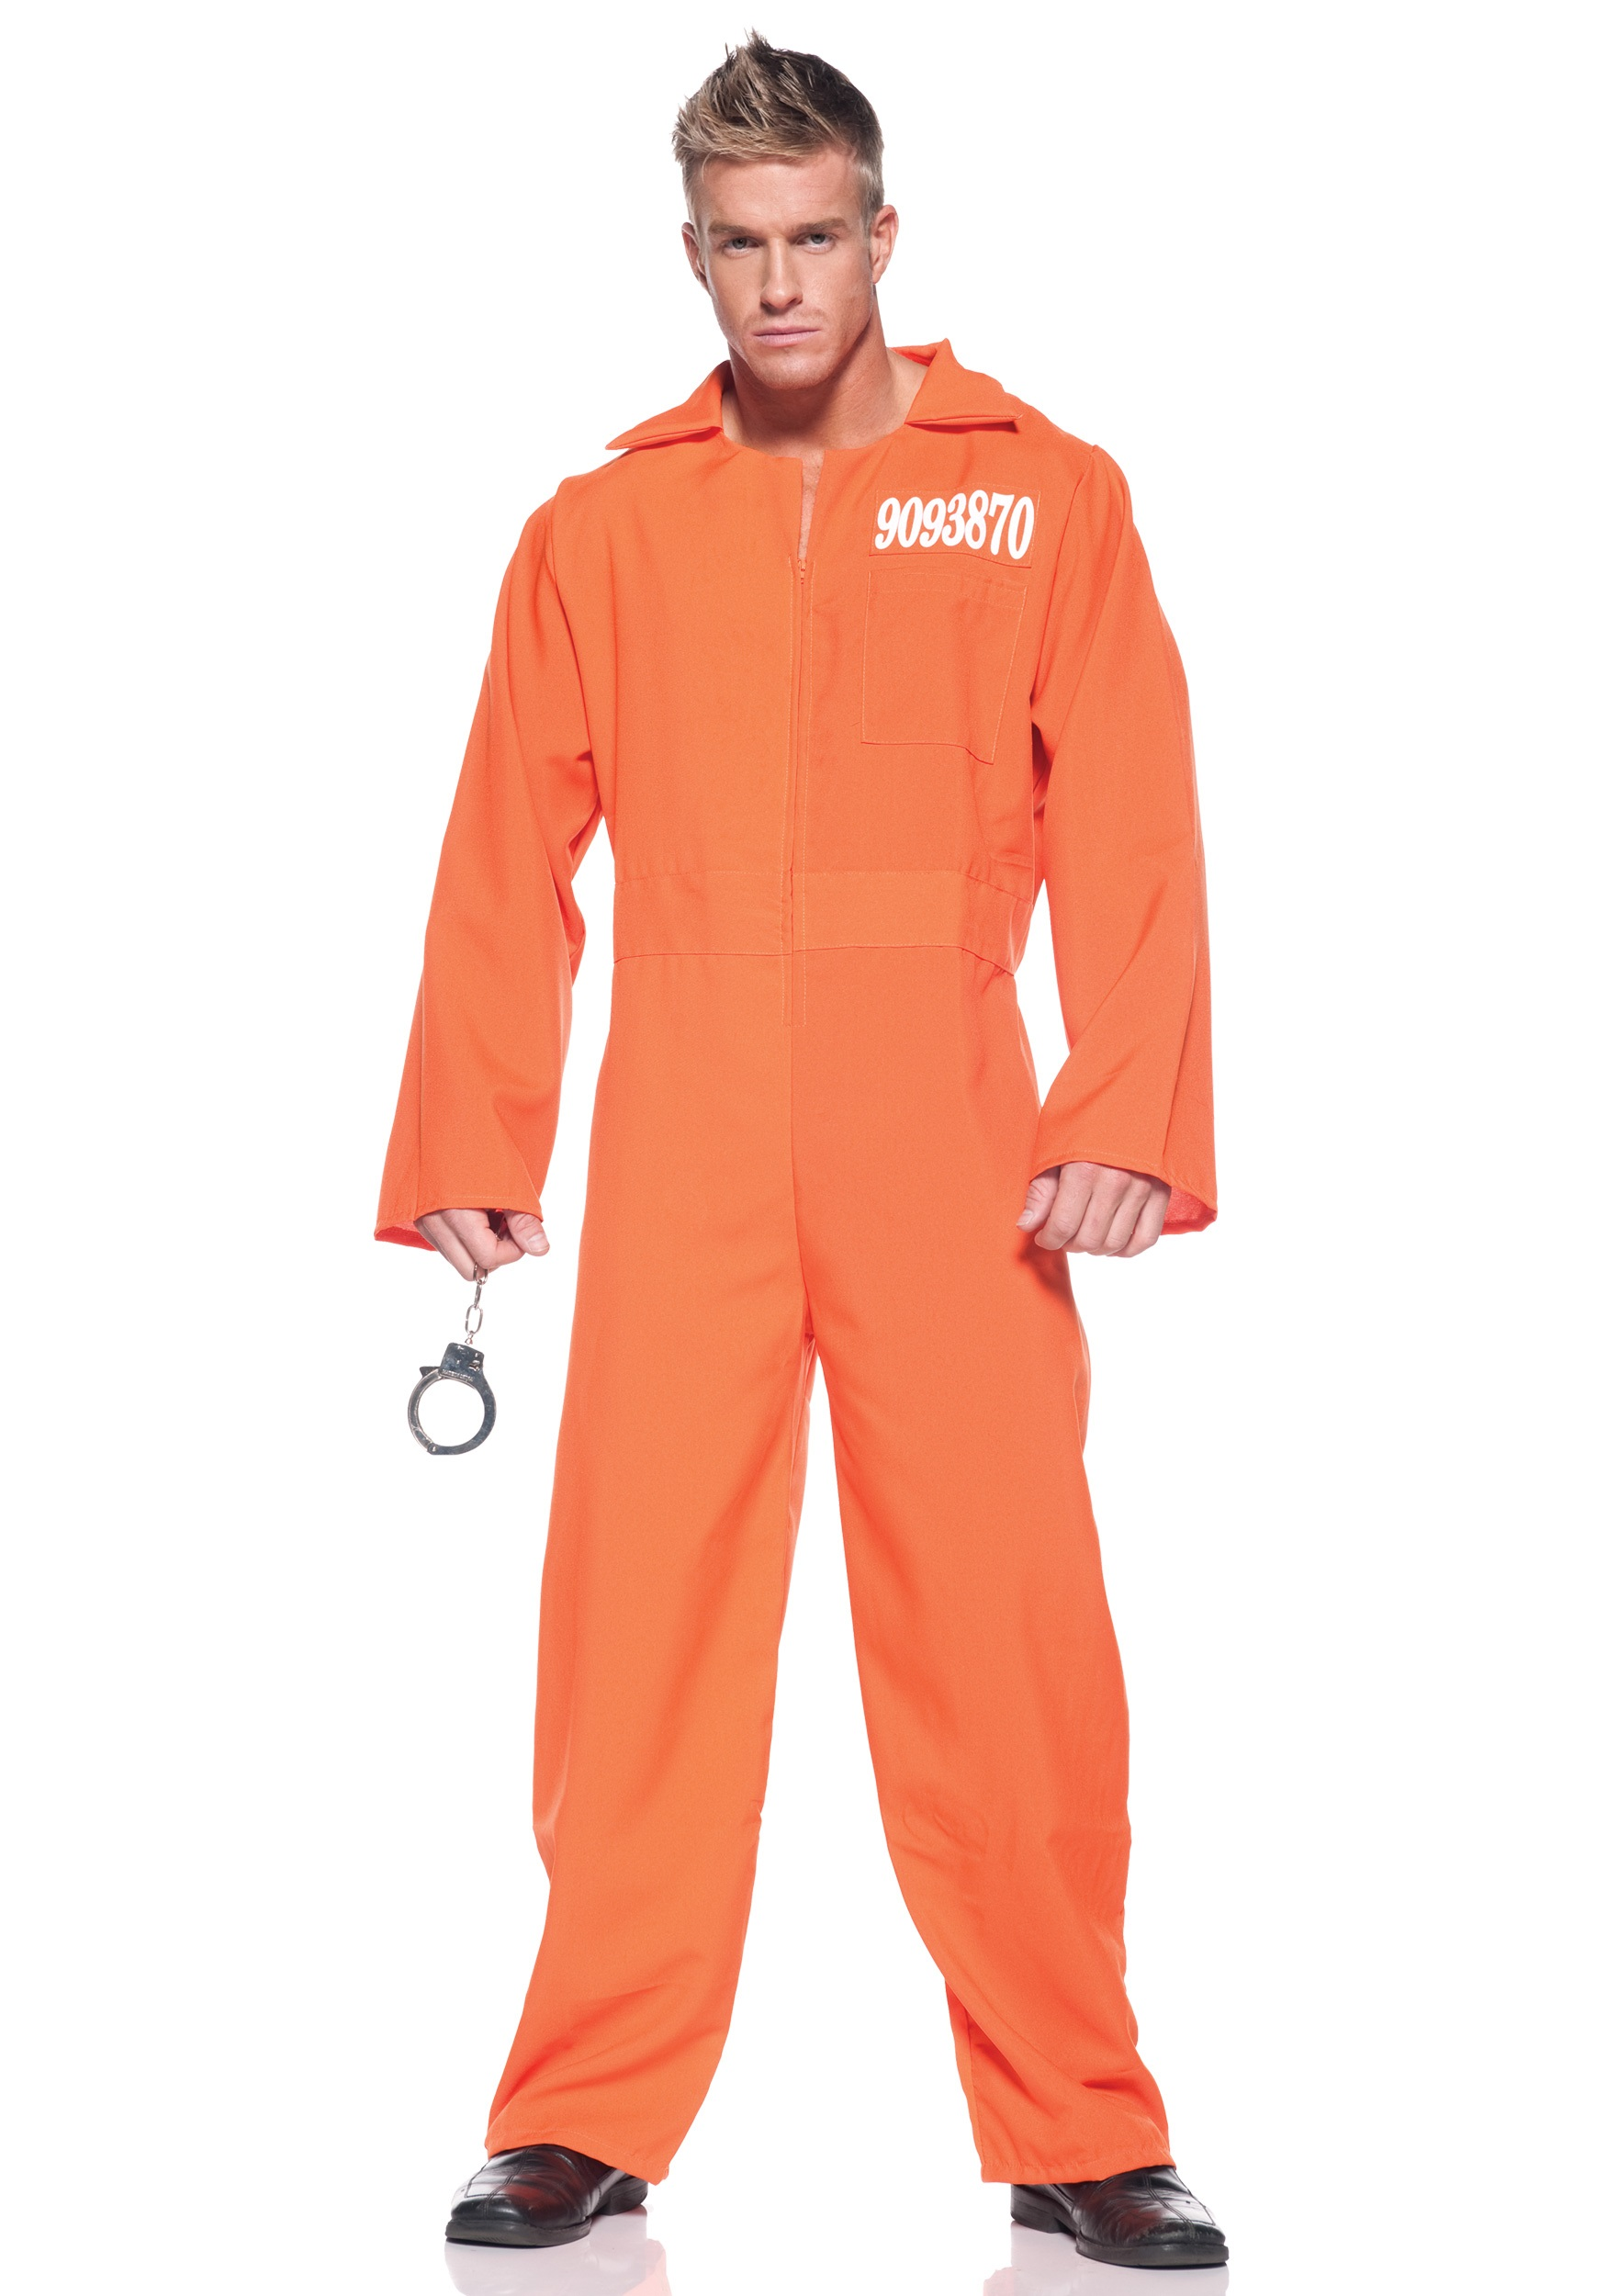 Plus Size Prison Jumpsuit Costume